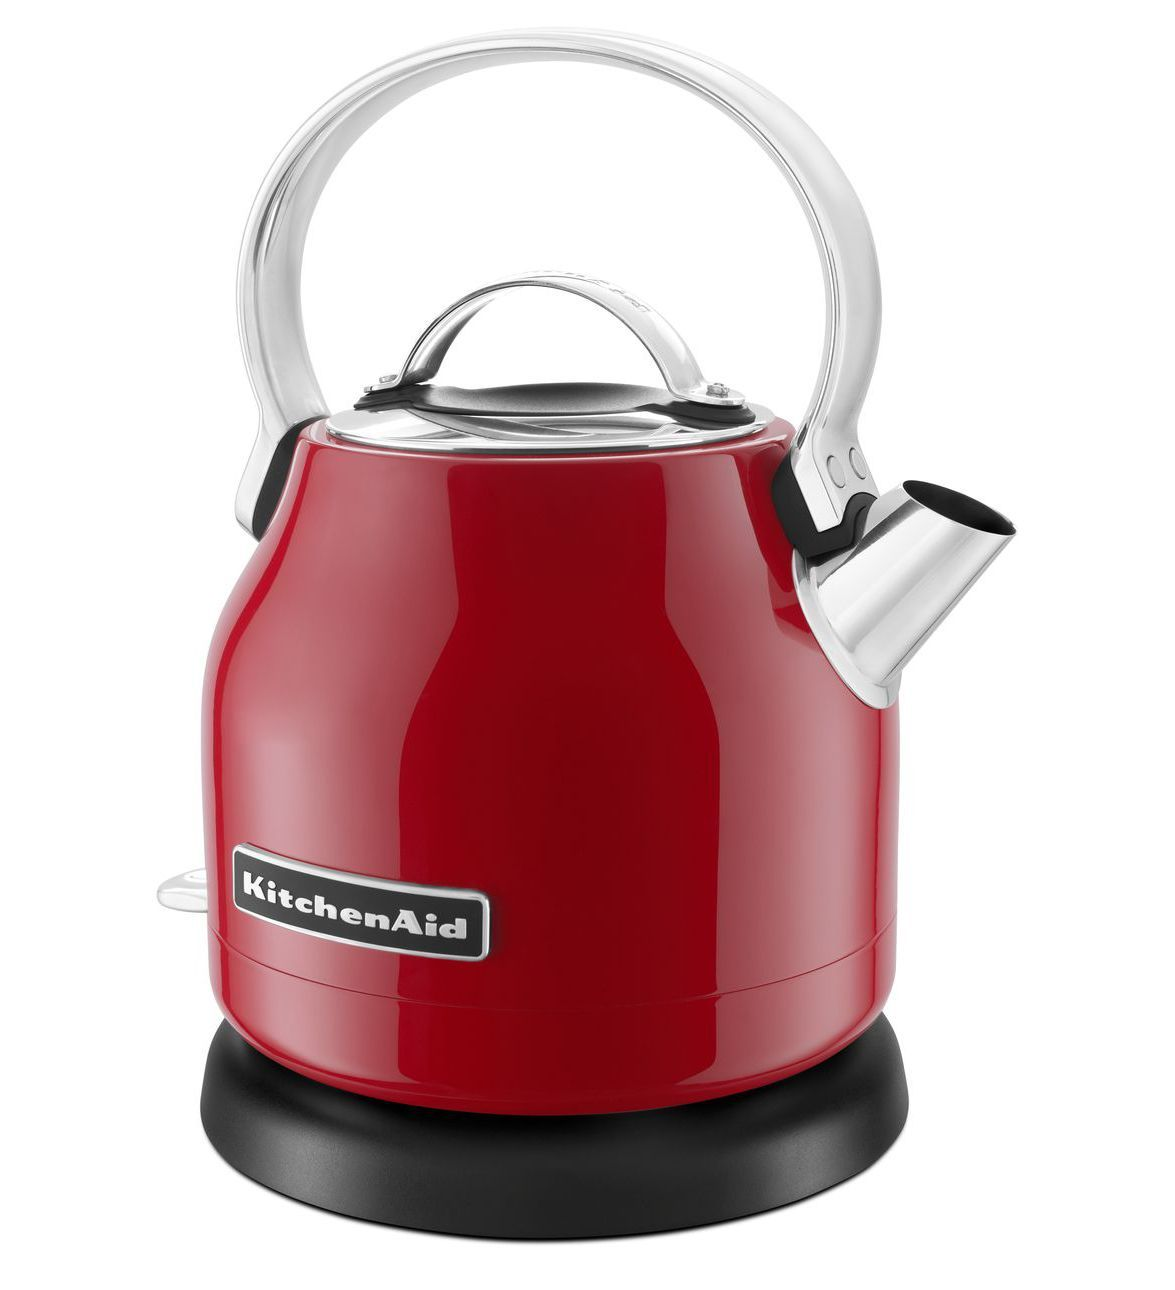 kitchenaid 4 1 2 quot red stainless steel 1 25l electric kettle empire red the kitchenaid 174 electric kettle is simple to use and offers 4498